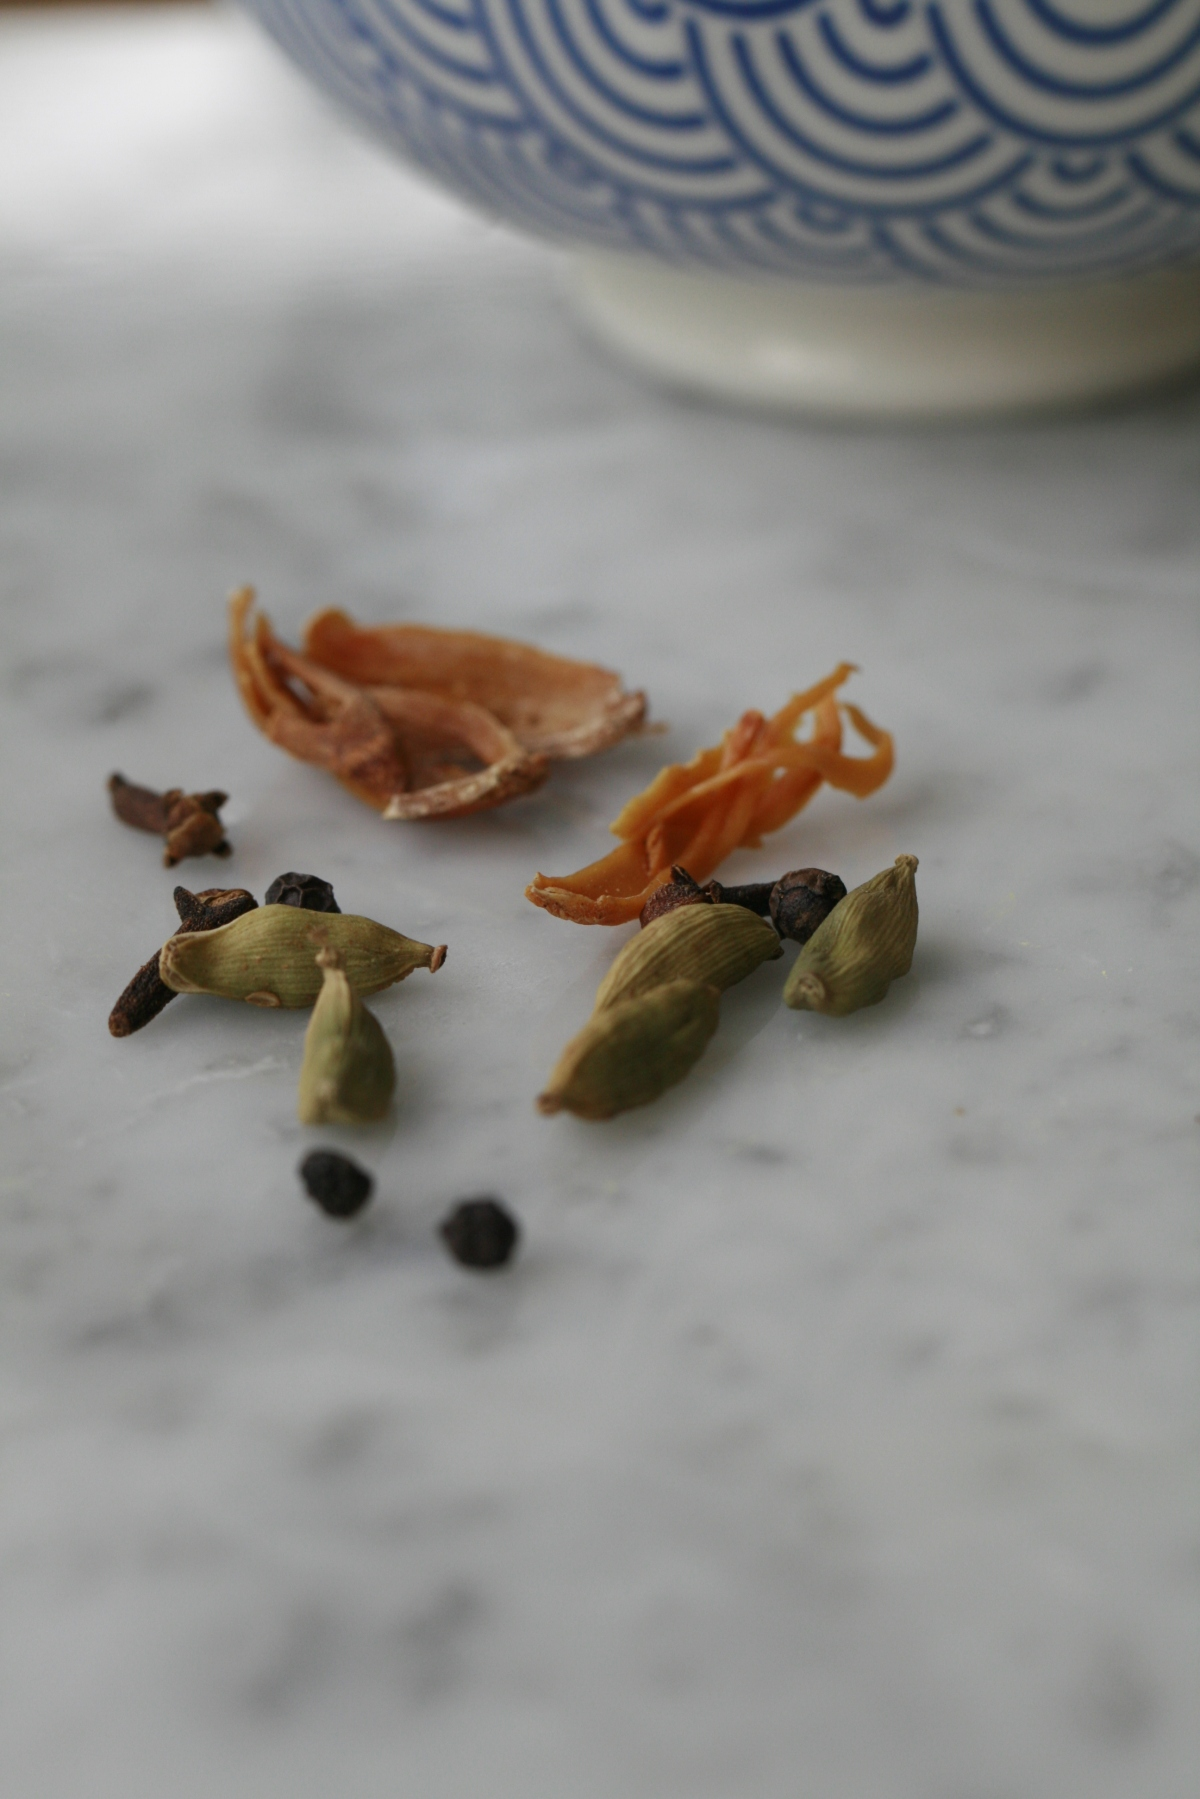 Marinade Spices. Mace, Green Cardamom, Whole cloves and black peppercorns